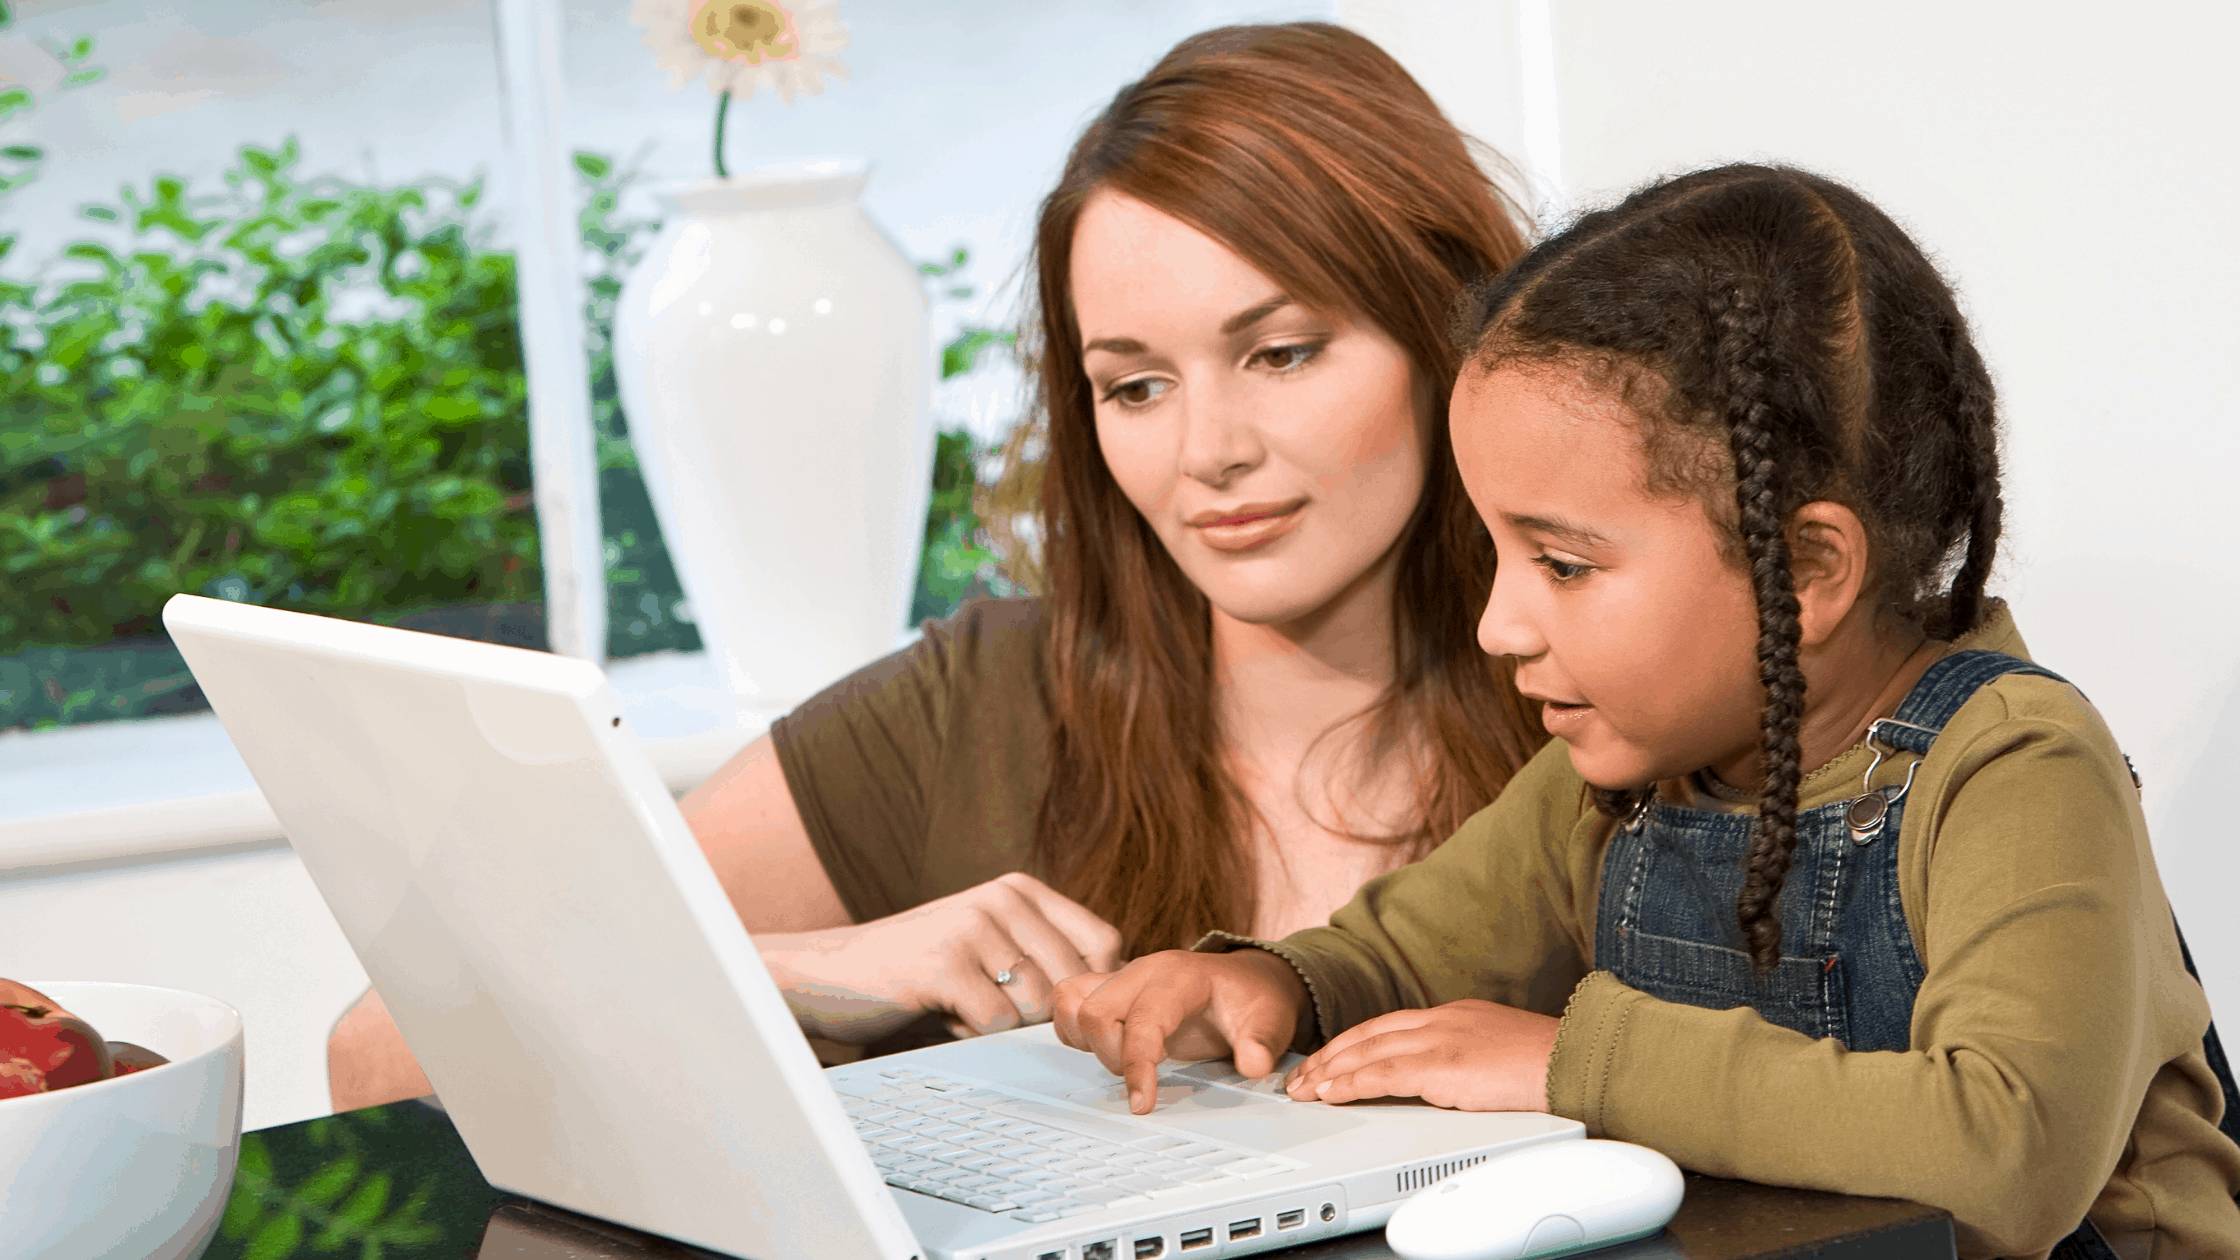 A mom being a helicopter parent and closely supervising her daughter doing her homework on the laptop.